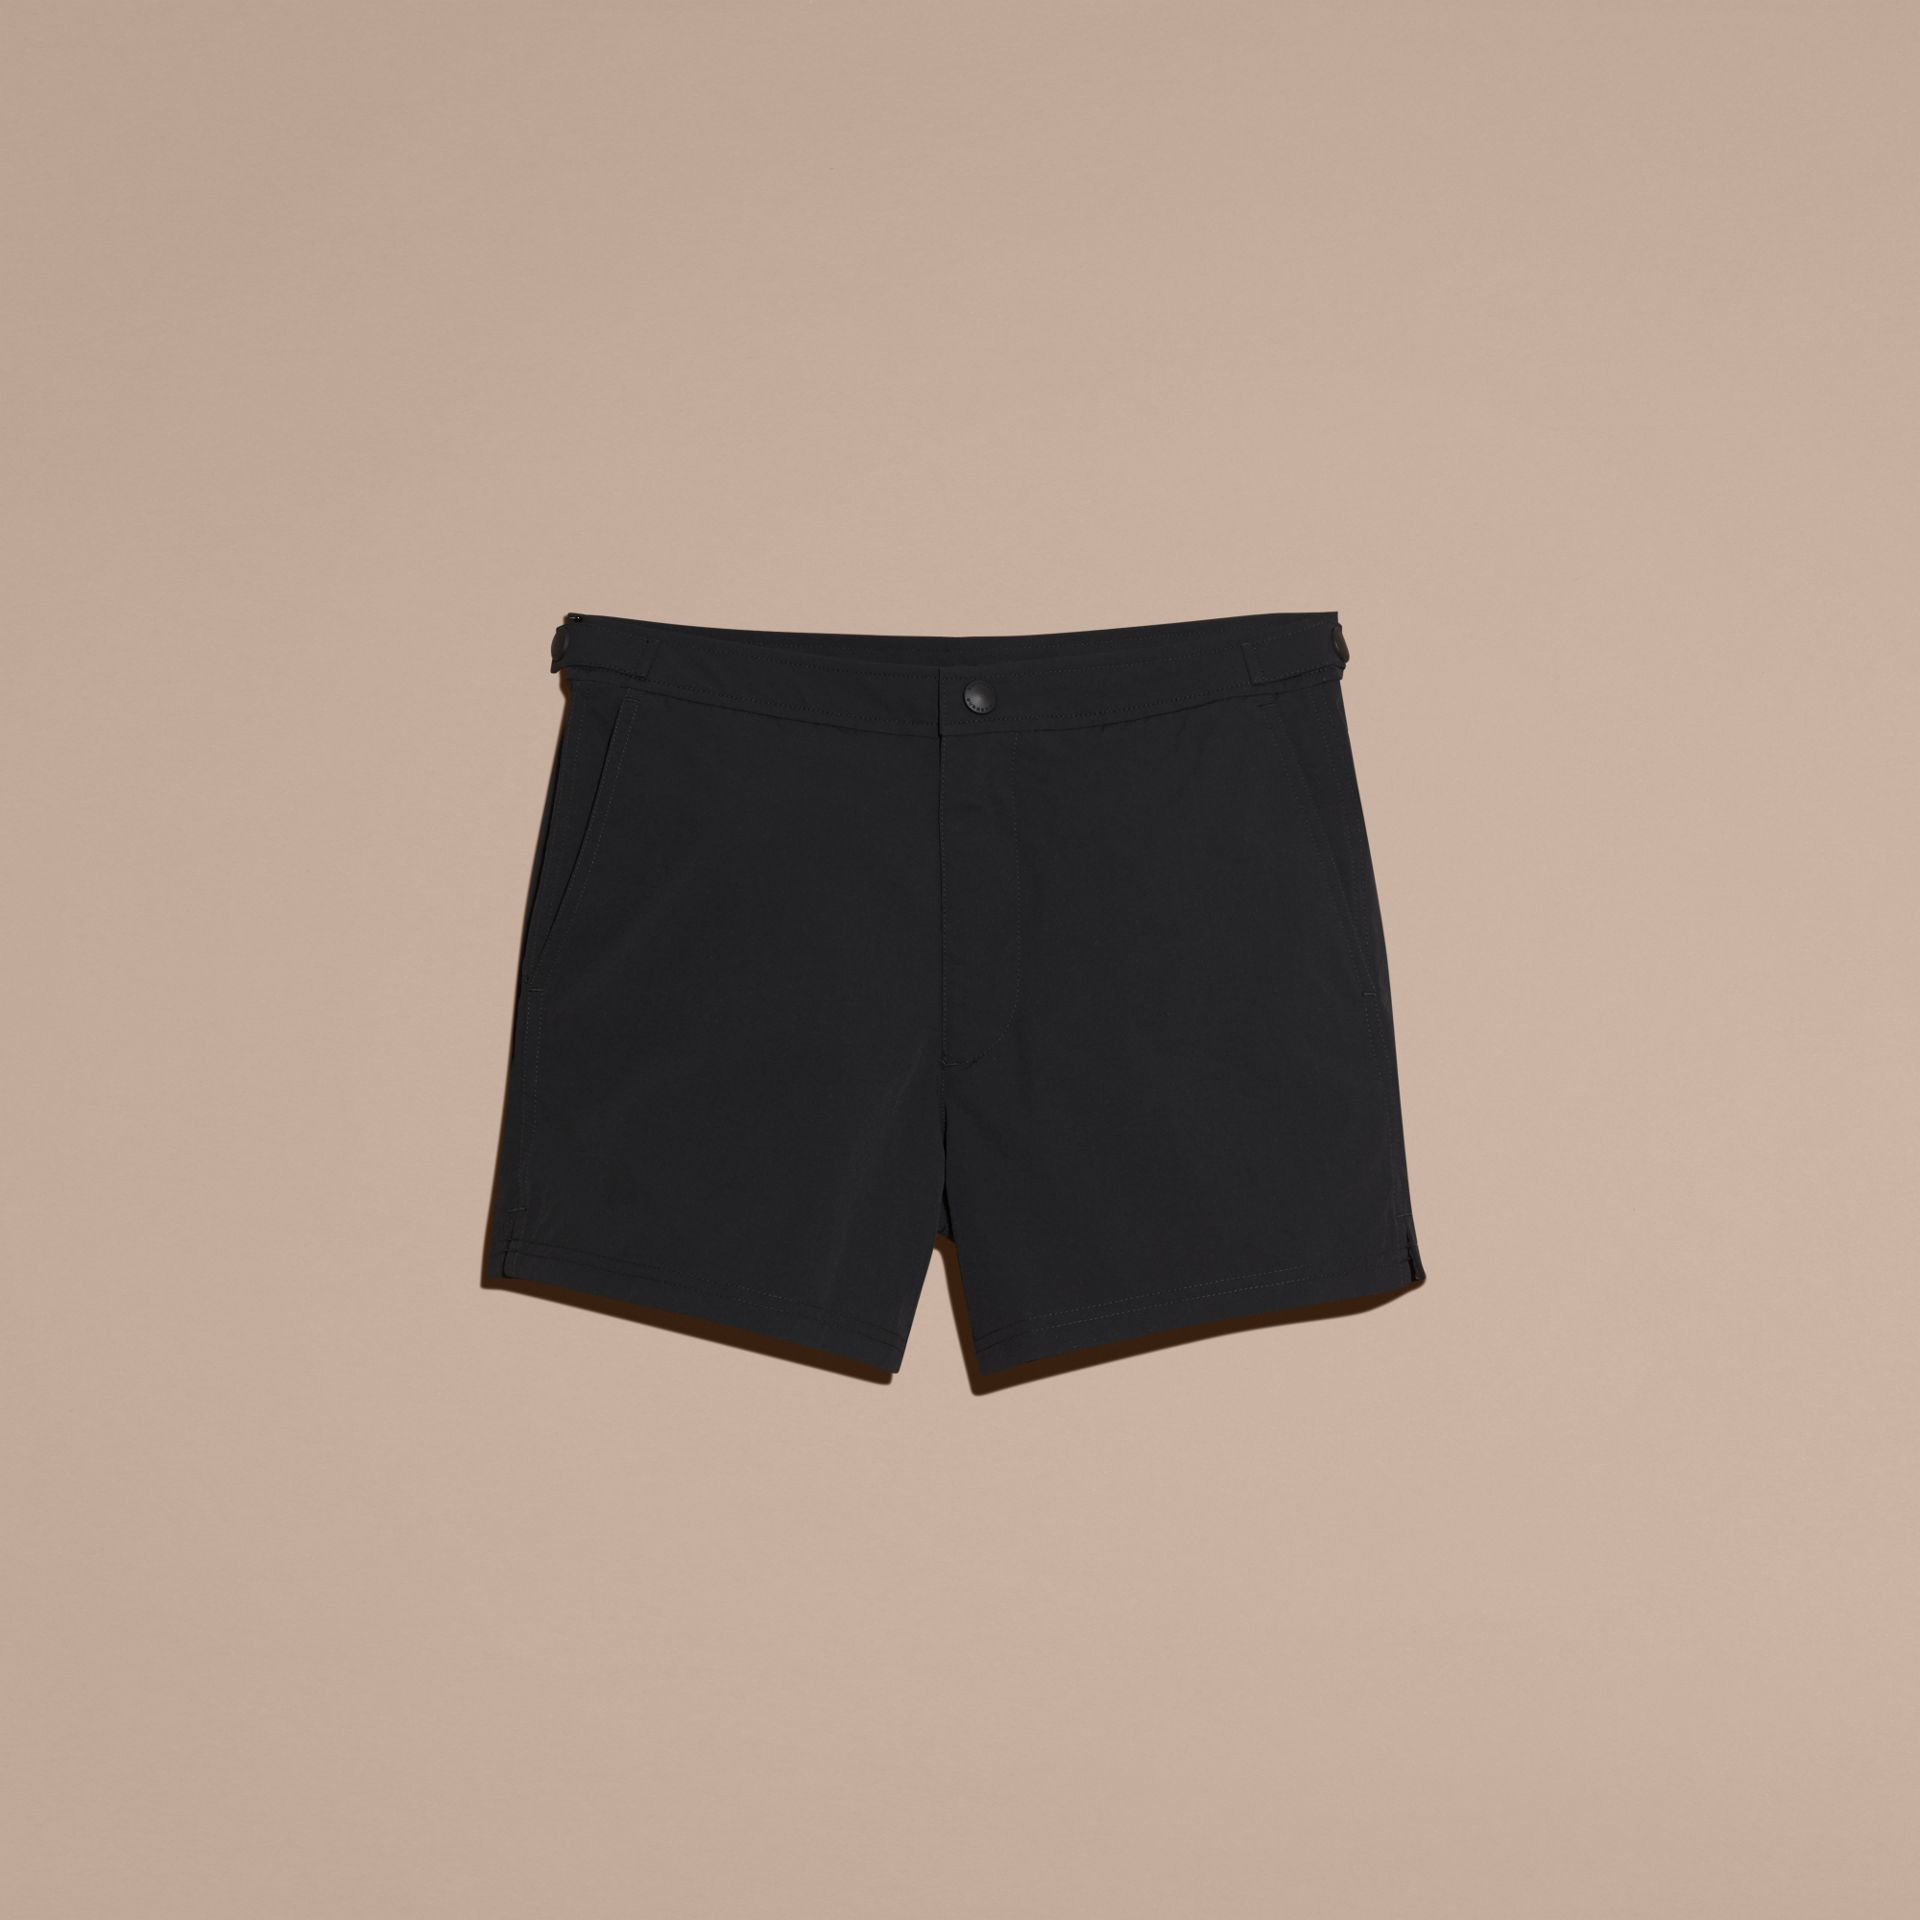 Tailored Swim Shorts in Black - Men | Burberry - gallery image 4